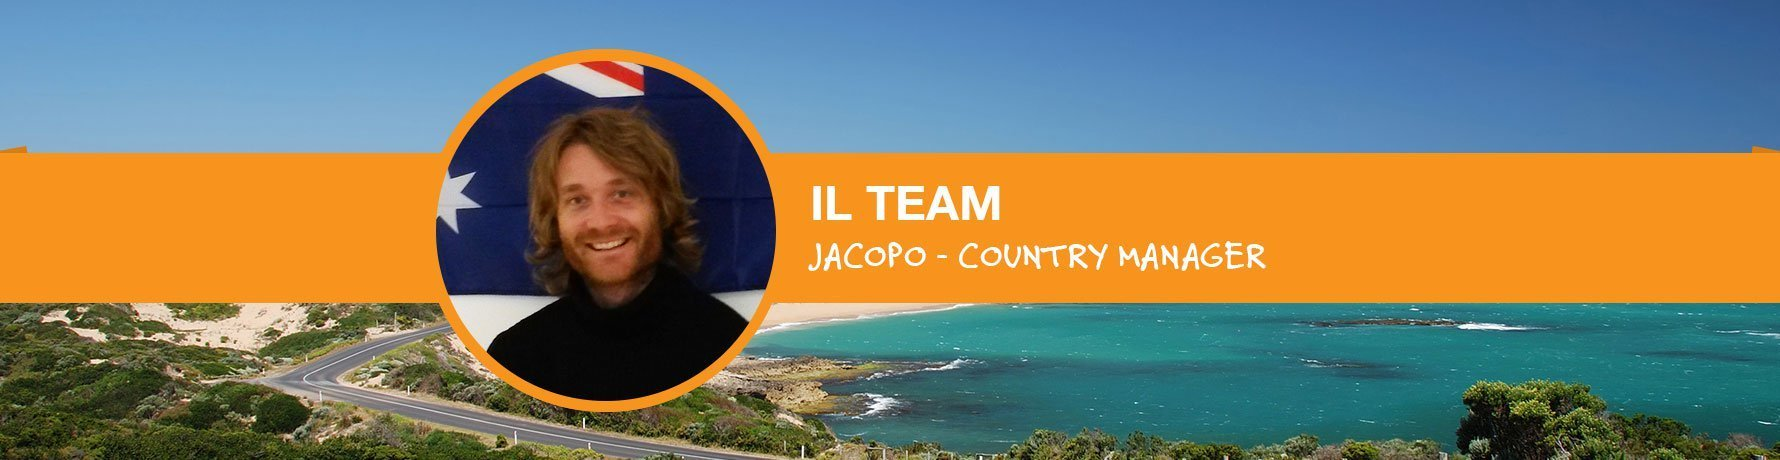 Il Team si presenta: Jacopo - Country Manager